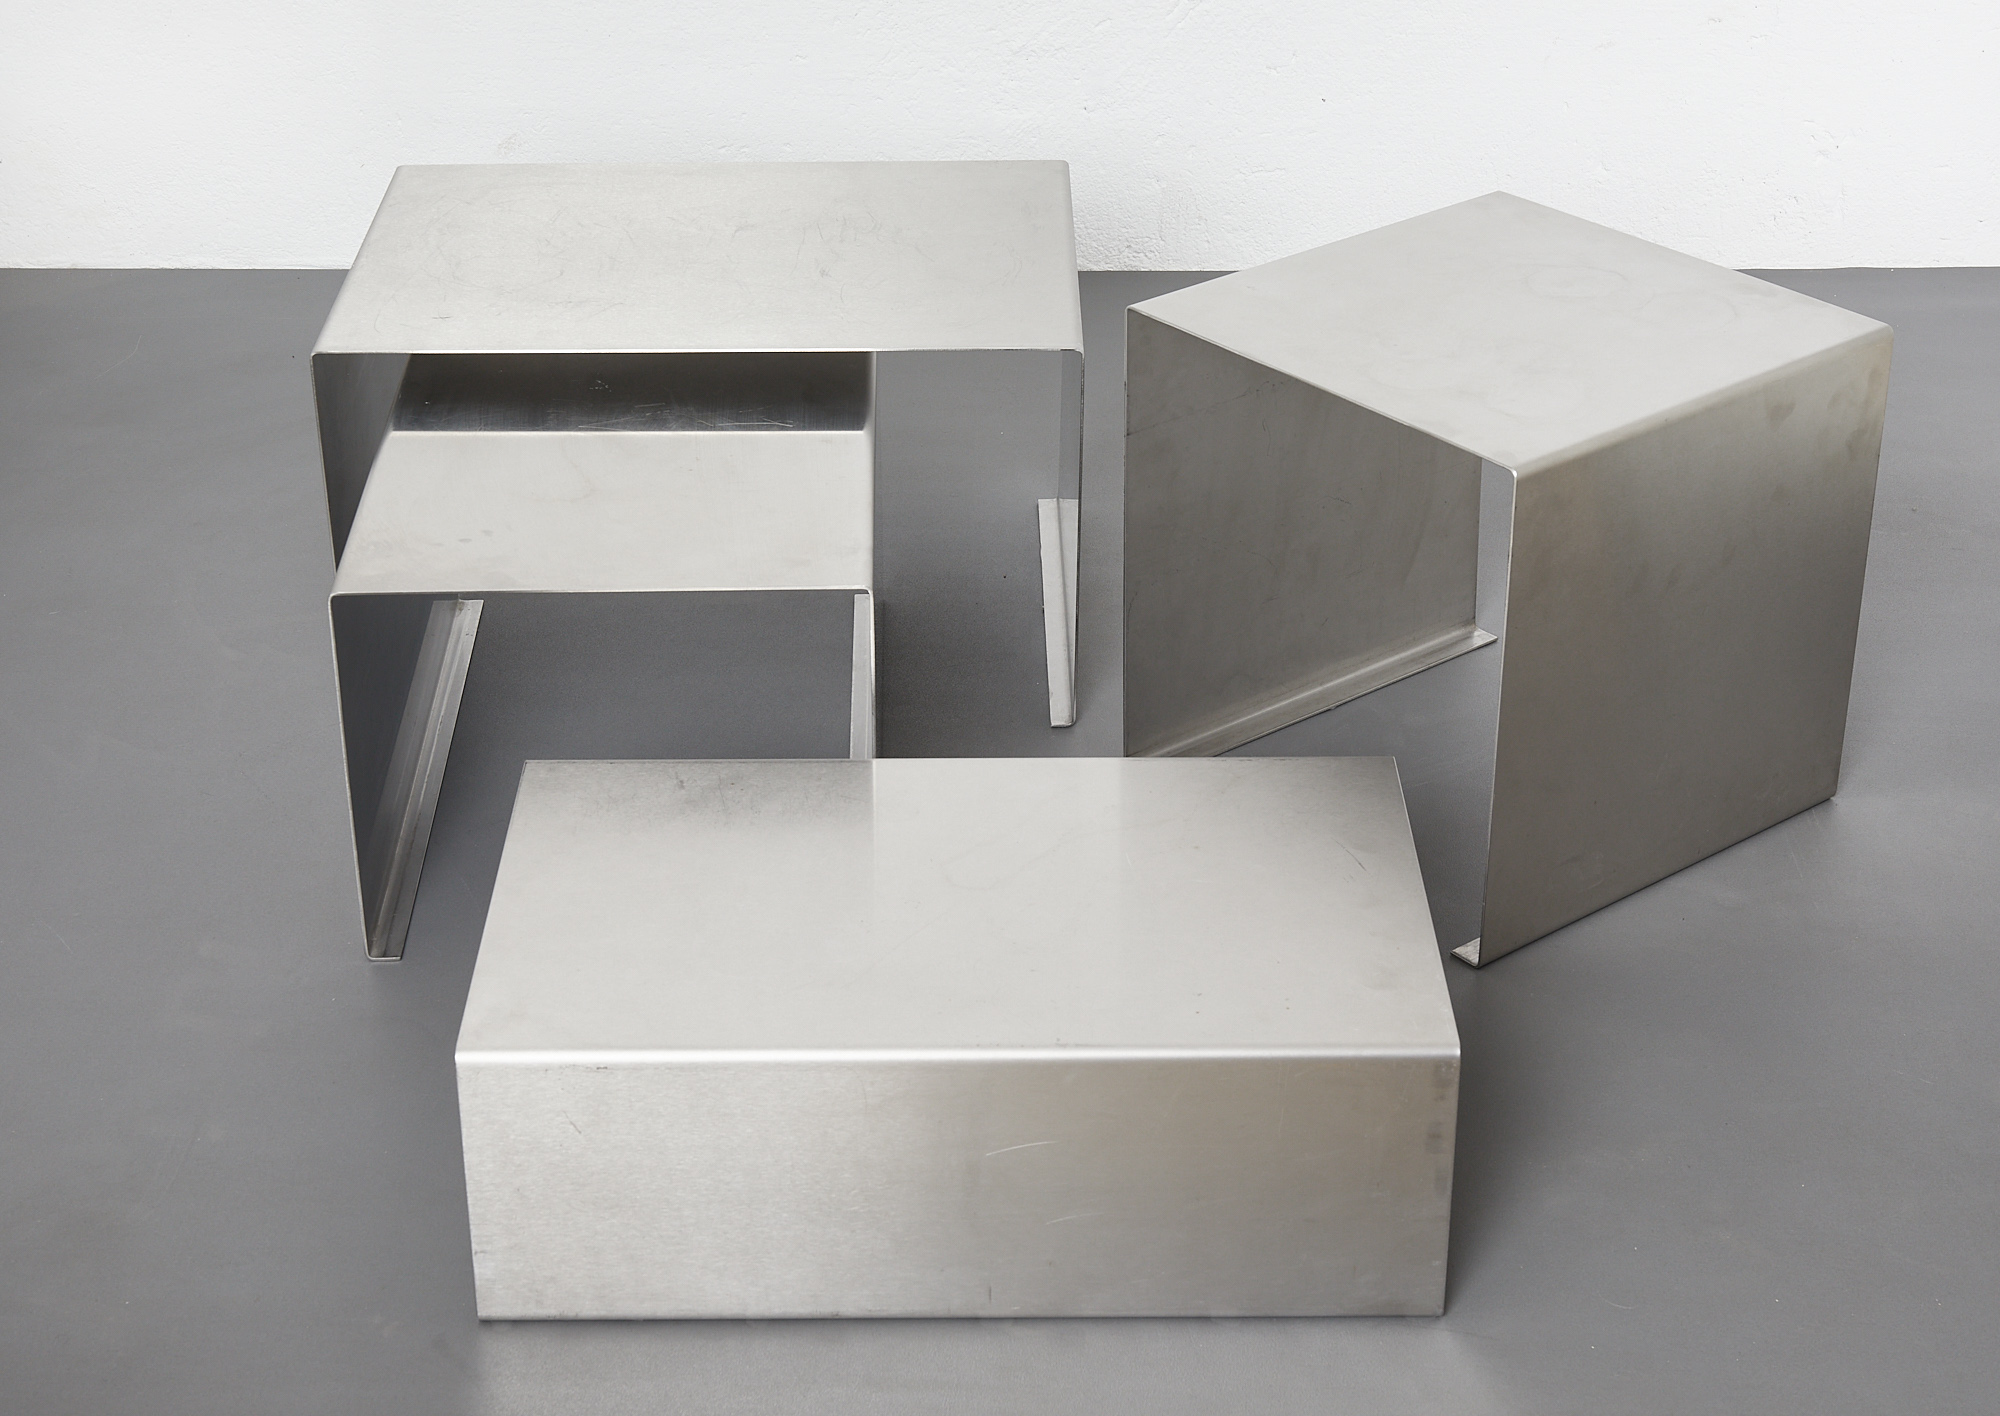 set-of-low-tables-in-brushed-metal-1970-1980-image-07